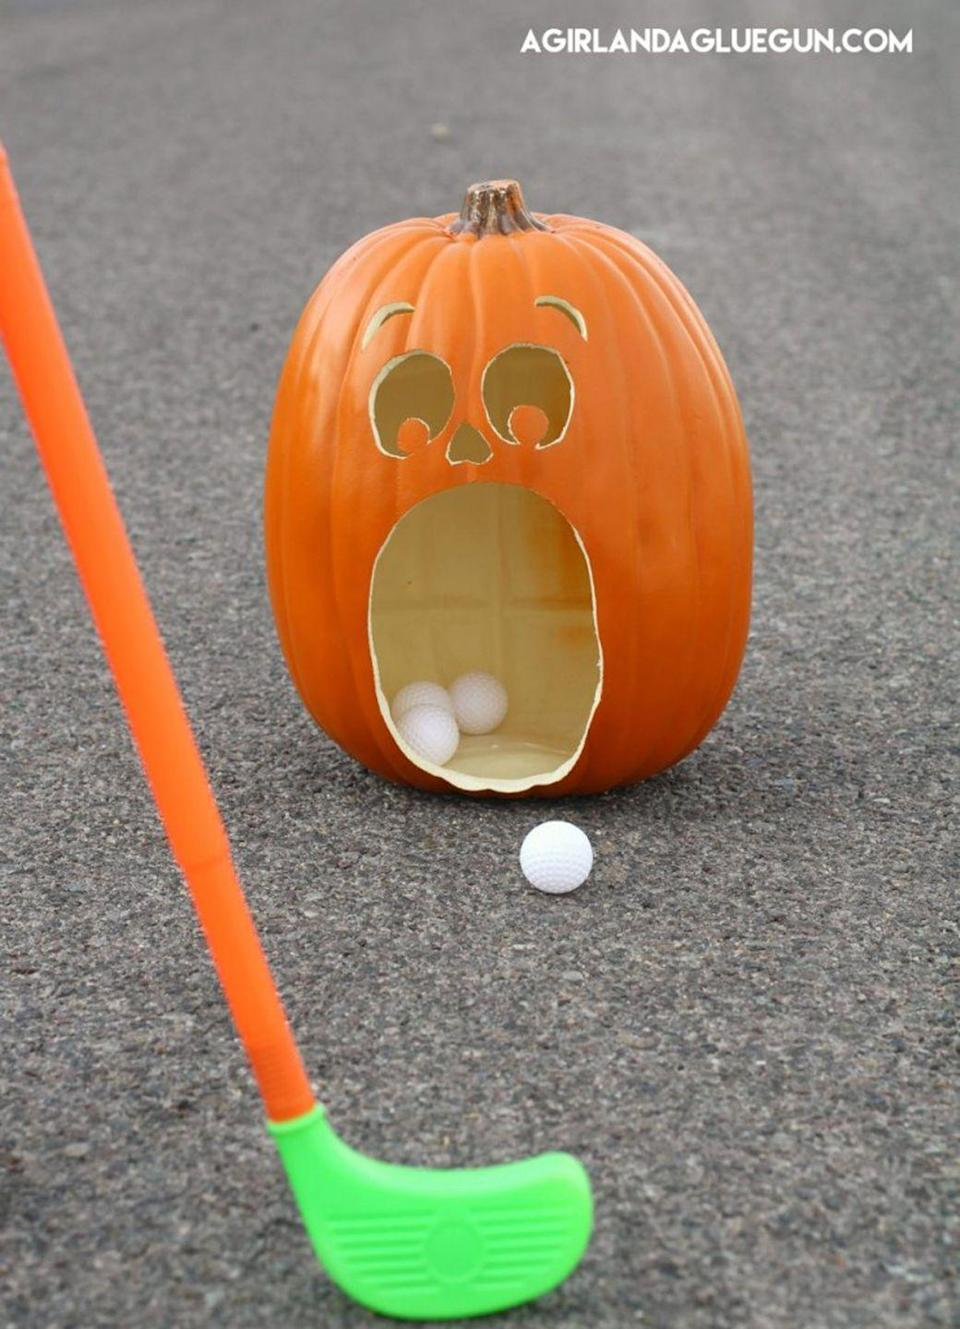 "<p>Fore! The whole family can practice their putting prowess with this golf game.</p><p><strong>Get the tutorial at <a href=""http://eighteen25.com/2016/09/pumpkin-golf-halloween-games/"" rel=""nofollow noopener"" target=""_blank"" data-ylk=""slk:Eighteen 25"" class=""link rapid-noclick-resp"">Eighteen 25</a>.</strong></p><p><a class=""link rapid-noclick-resp"" href=""https://www.amazon.com/StarQualityBargain-JackoLantern-Decorations-Waterproof-Halloween/dp/B07G2H1P45/?tag=syn-yahoo-20&ascsubtag=%5Bartid%7C2139.g.34440360%5Bsrc%7Cyahoo-us"" rel=""nofollow noopener"" target=""_blank"" data-ylk=""slk:SHOP FAUX PUMPKINS"">SHOP FAUX PUMPKINS</a><br></p>"